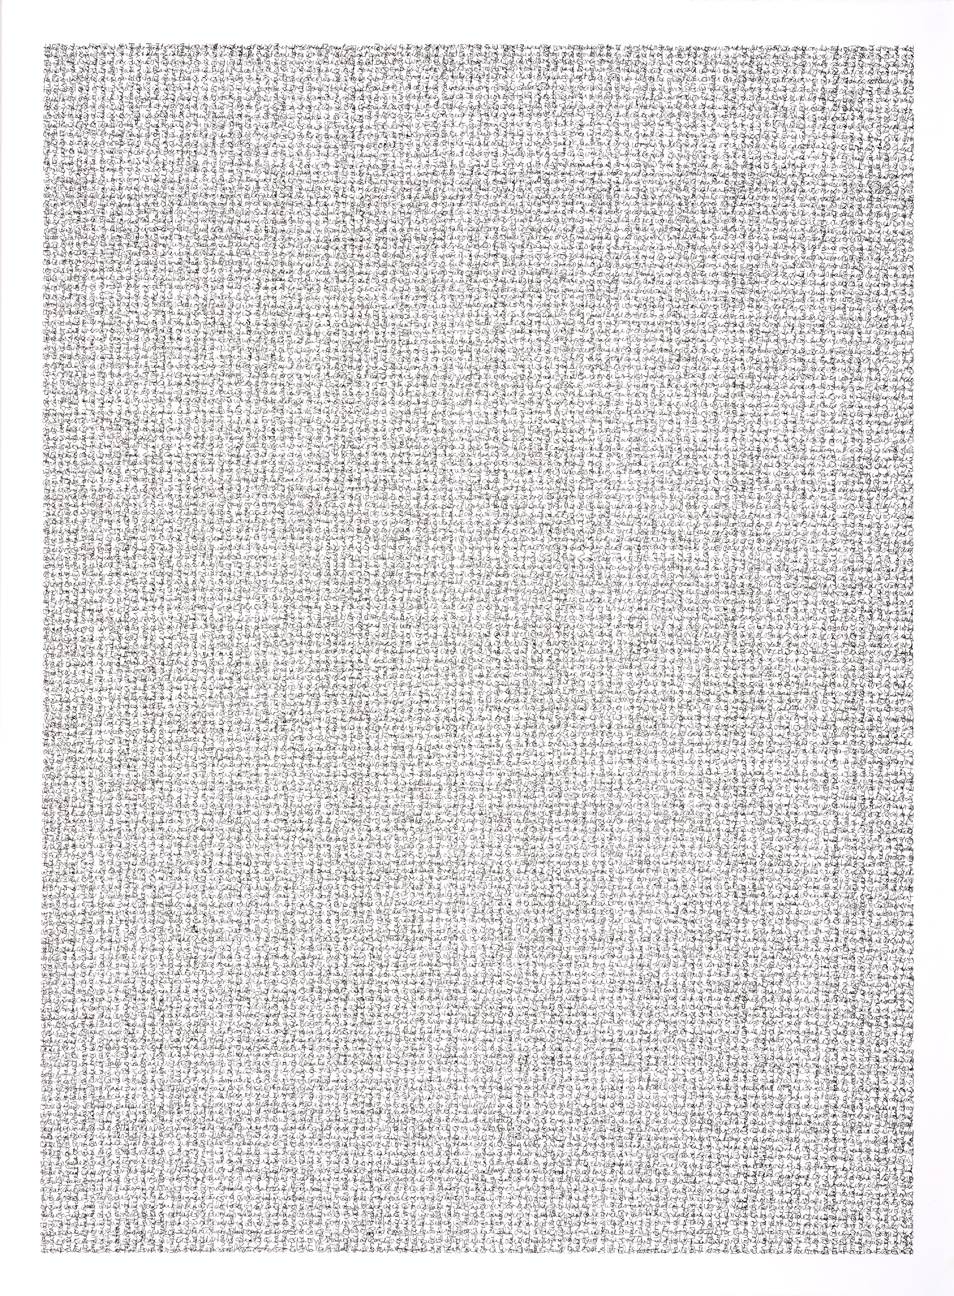 """chpt. 17: take great care over words, 2015 